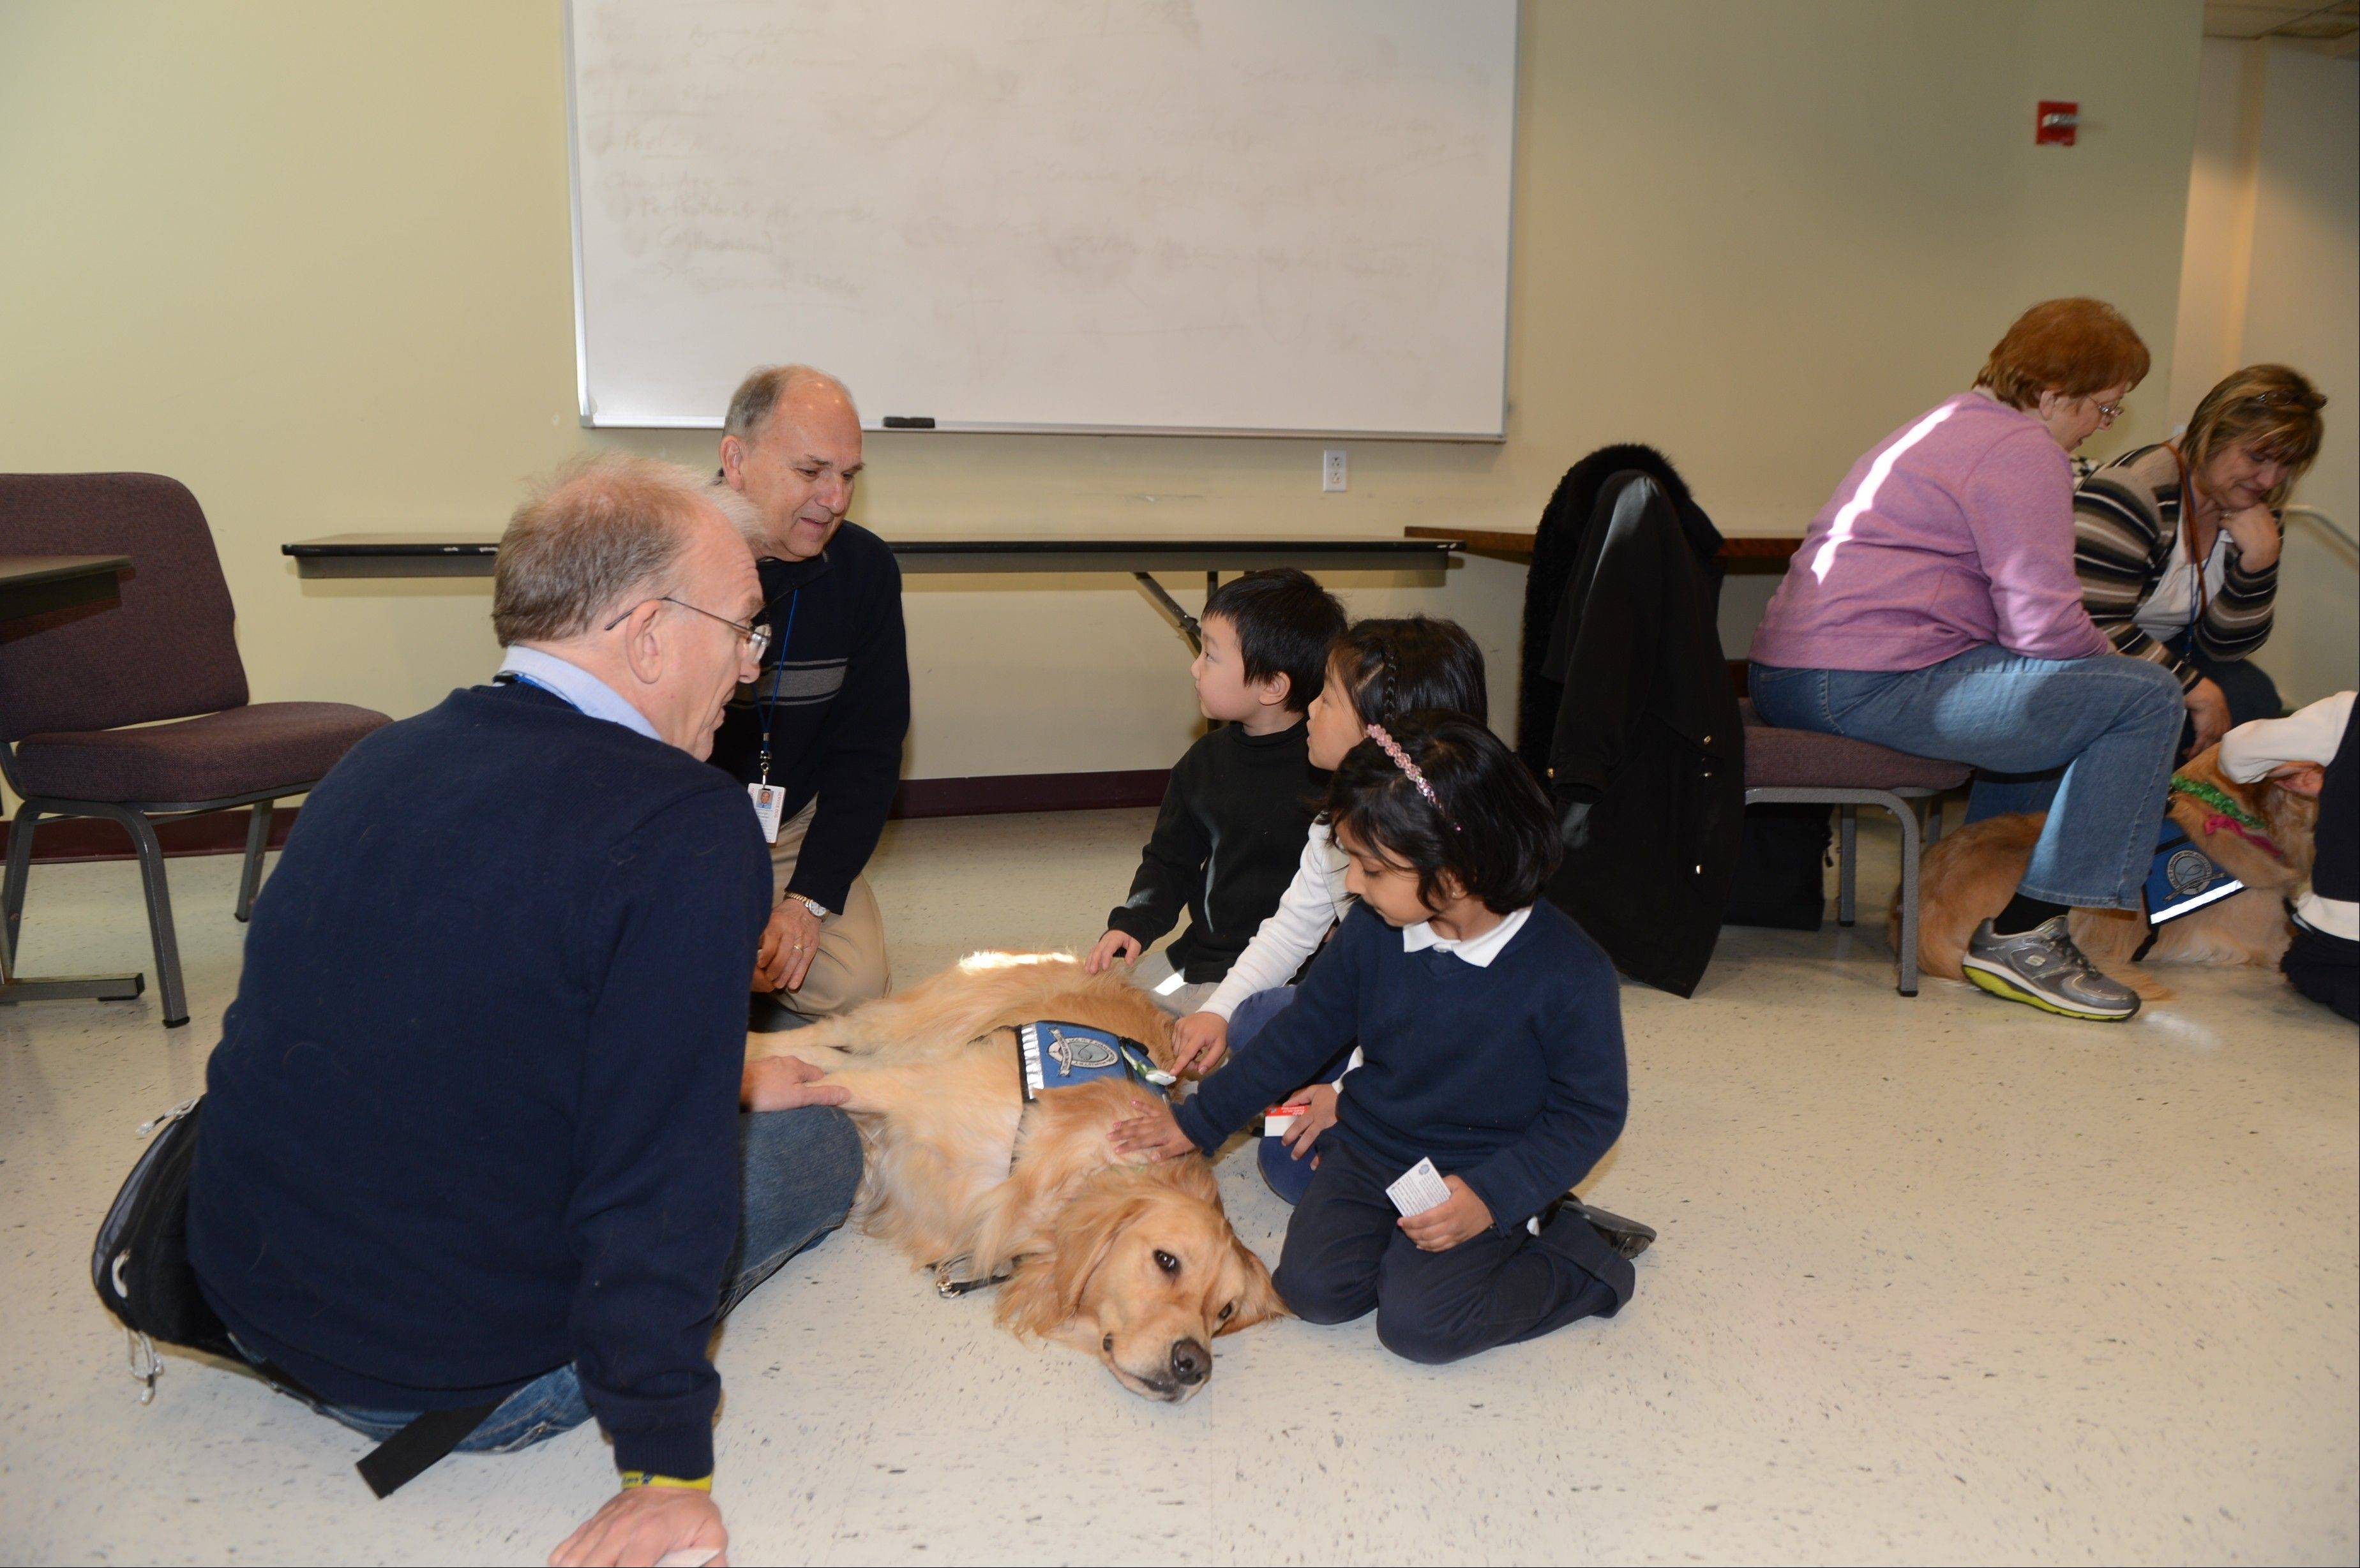 Pastor Paul Klopke, left, of Living Christ Lutheran Church in Arlington Heights, George Schiestel of Arlington Heights and comfort dog JoJo visit with children at the Lutheran school in Danbury, Conn., this month following the school shootings in nearby Newtown. ----